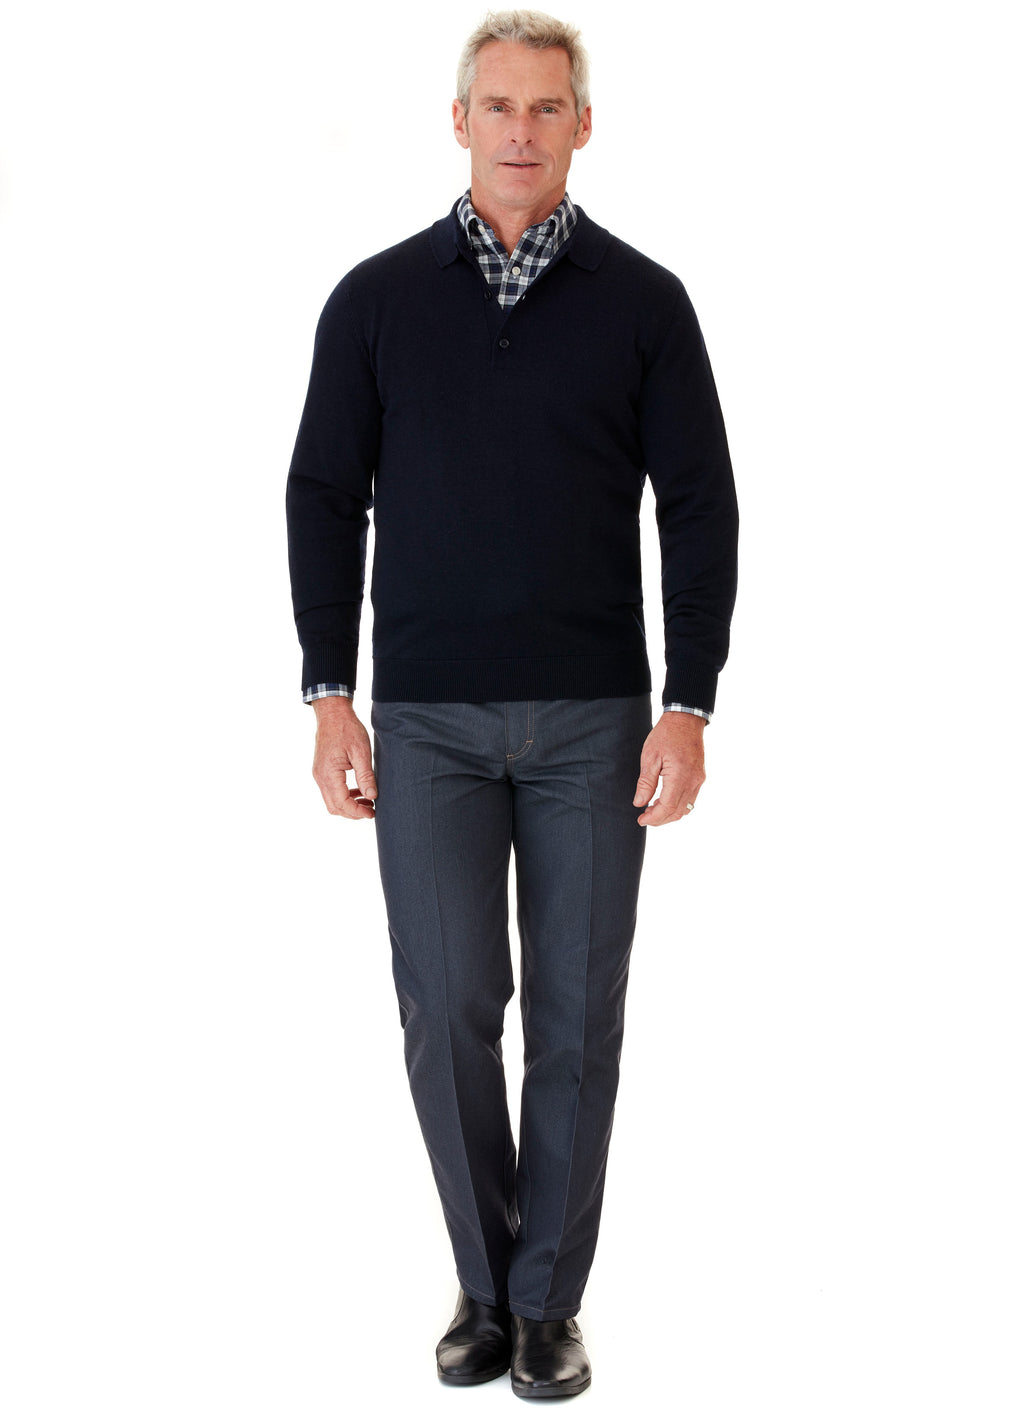 GLENORCHY POLO COLLAR KNIT